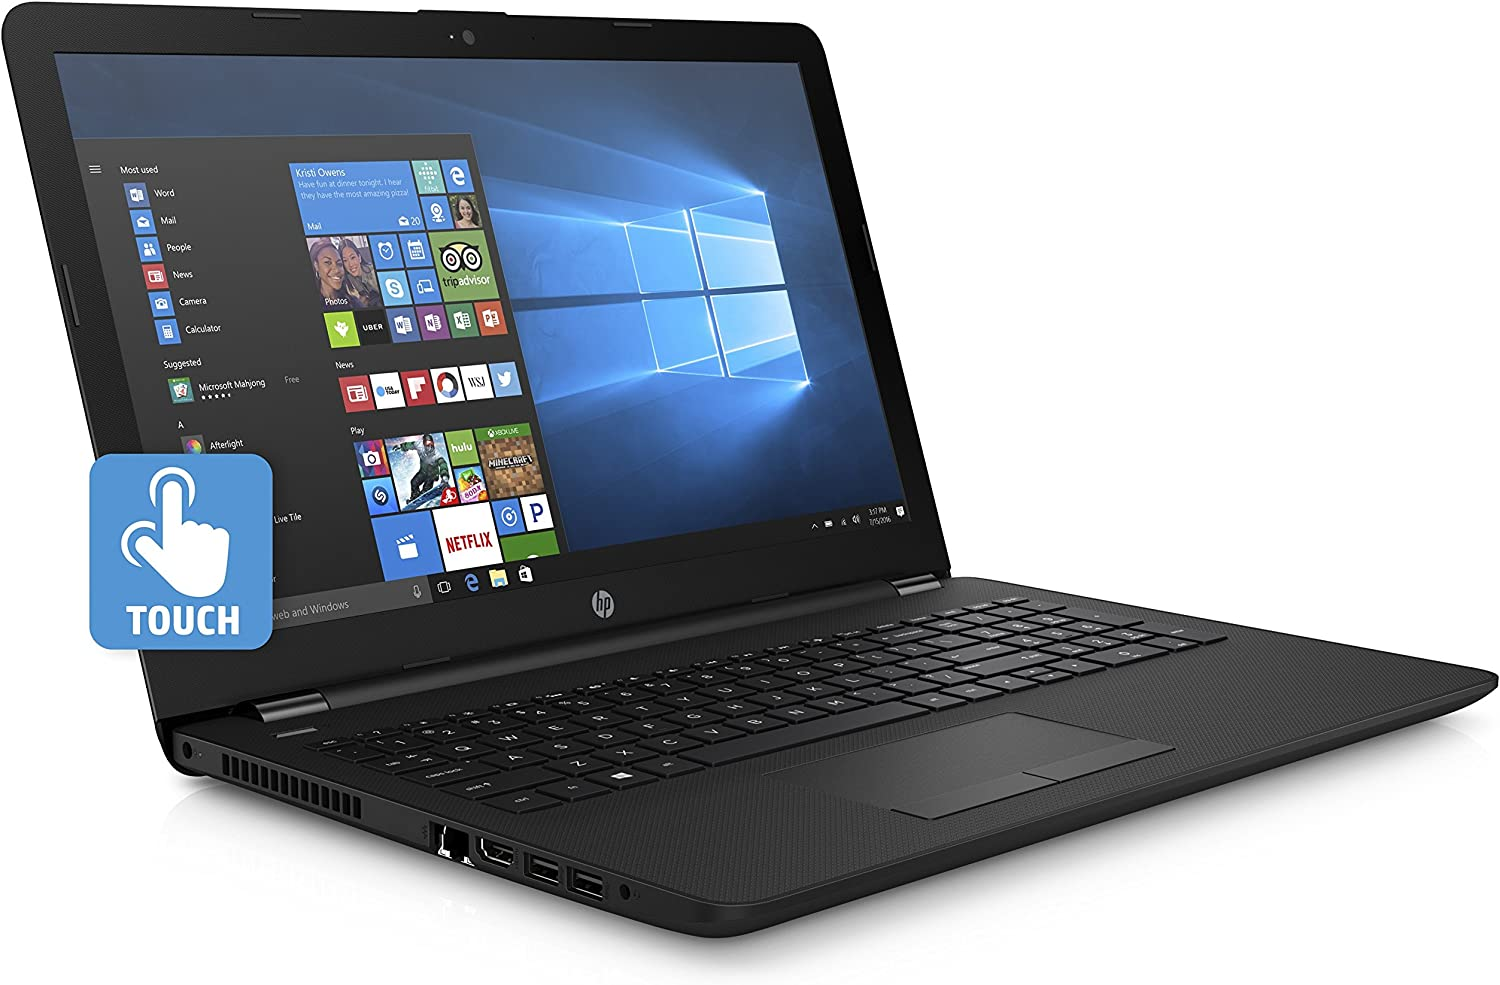 HP 15.6-Inch HD Touchscreen Laptop (Intel Quad Core Pentium N3540 2.16 GHz, 4GB DDR3L-1600 Memory, 500 GB HDD, DVD Burner, HDMI, HD Webcam, Win 10)